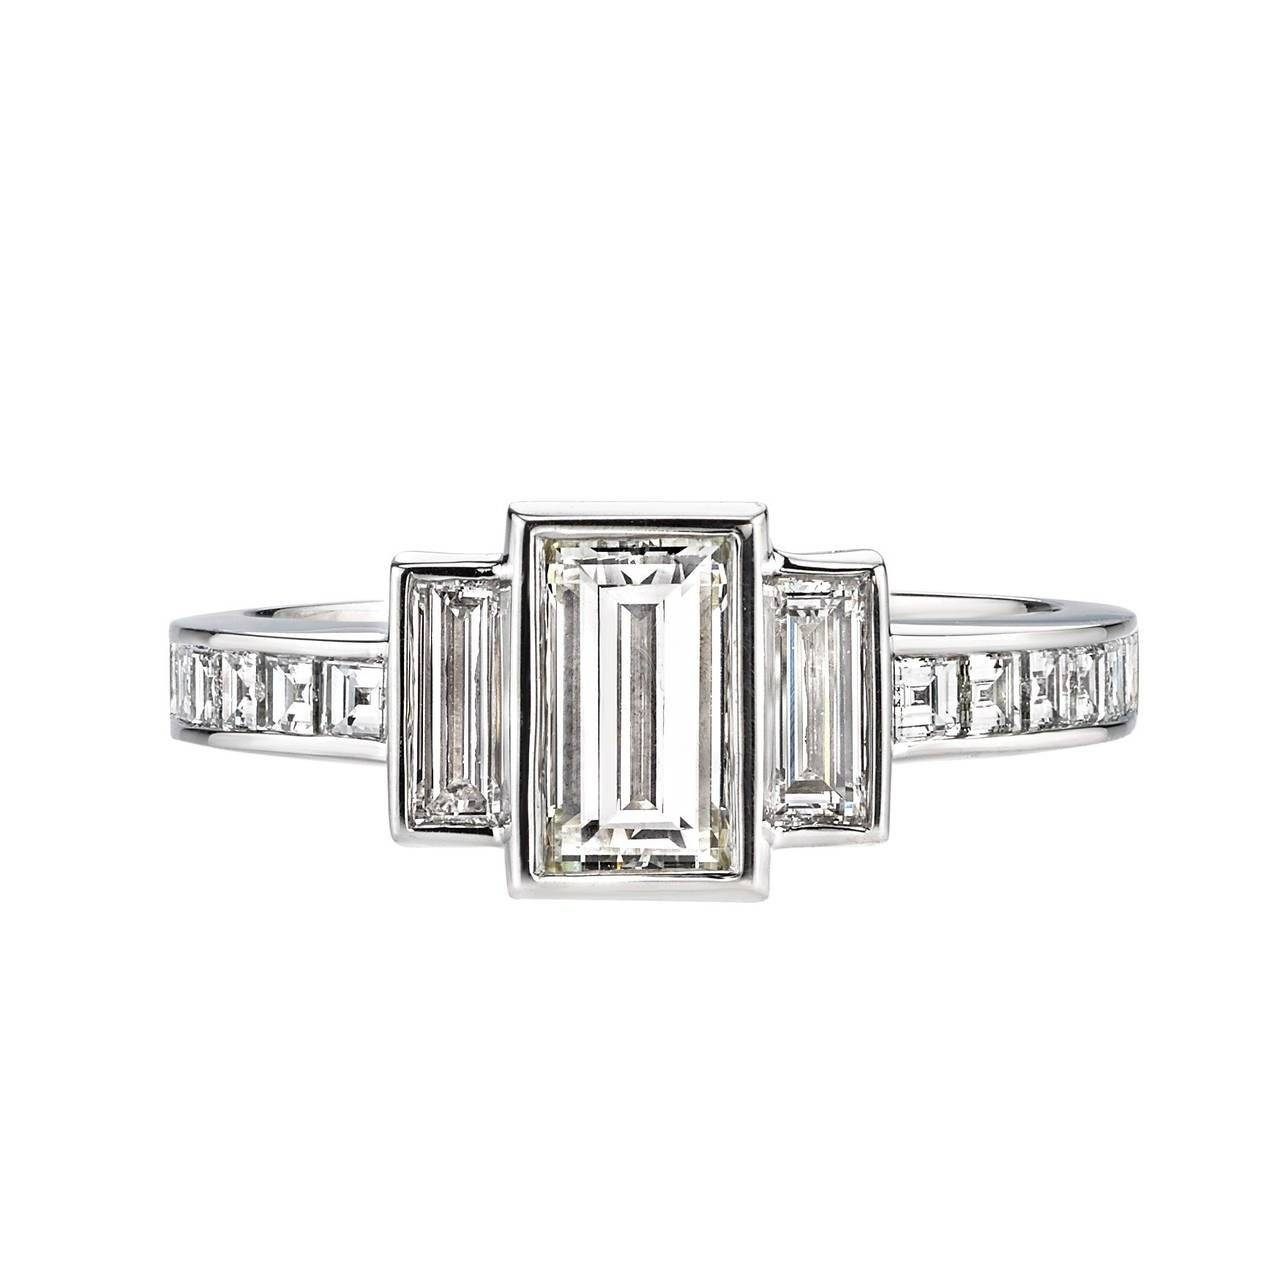 Baguette Emerald Cut Diamond Platinum Engagement Ring For Sale At For Baguette Cut Diamond Engagement Rings (View 7 of 15)